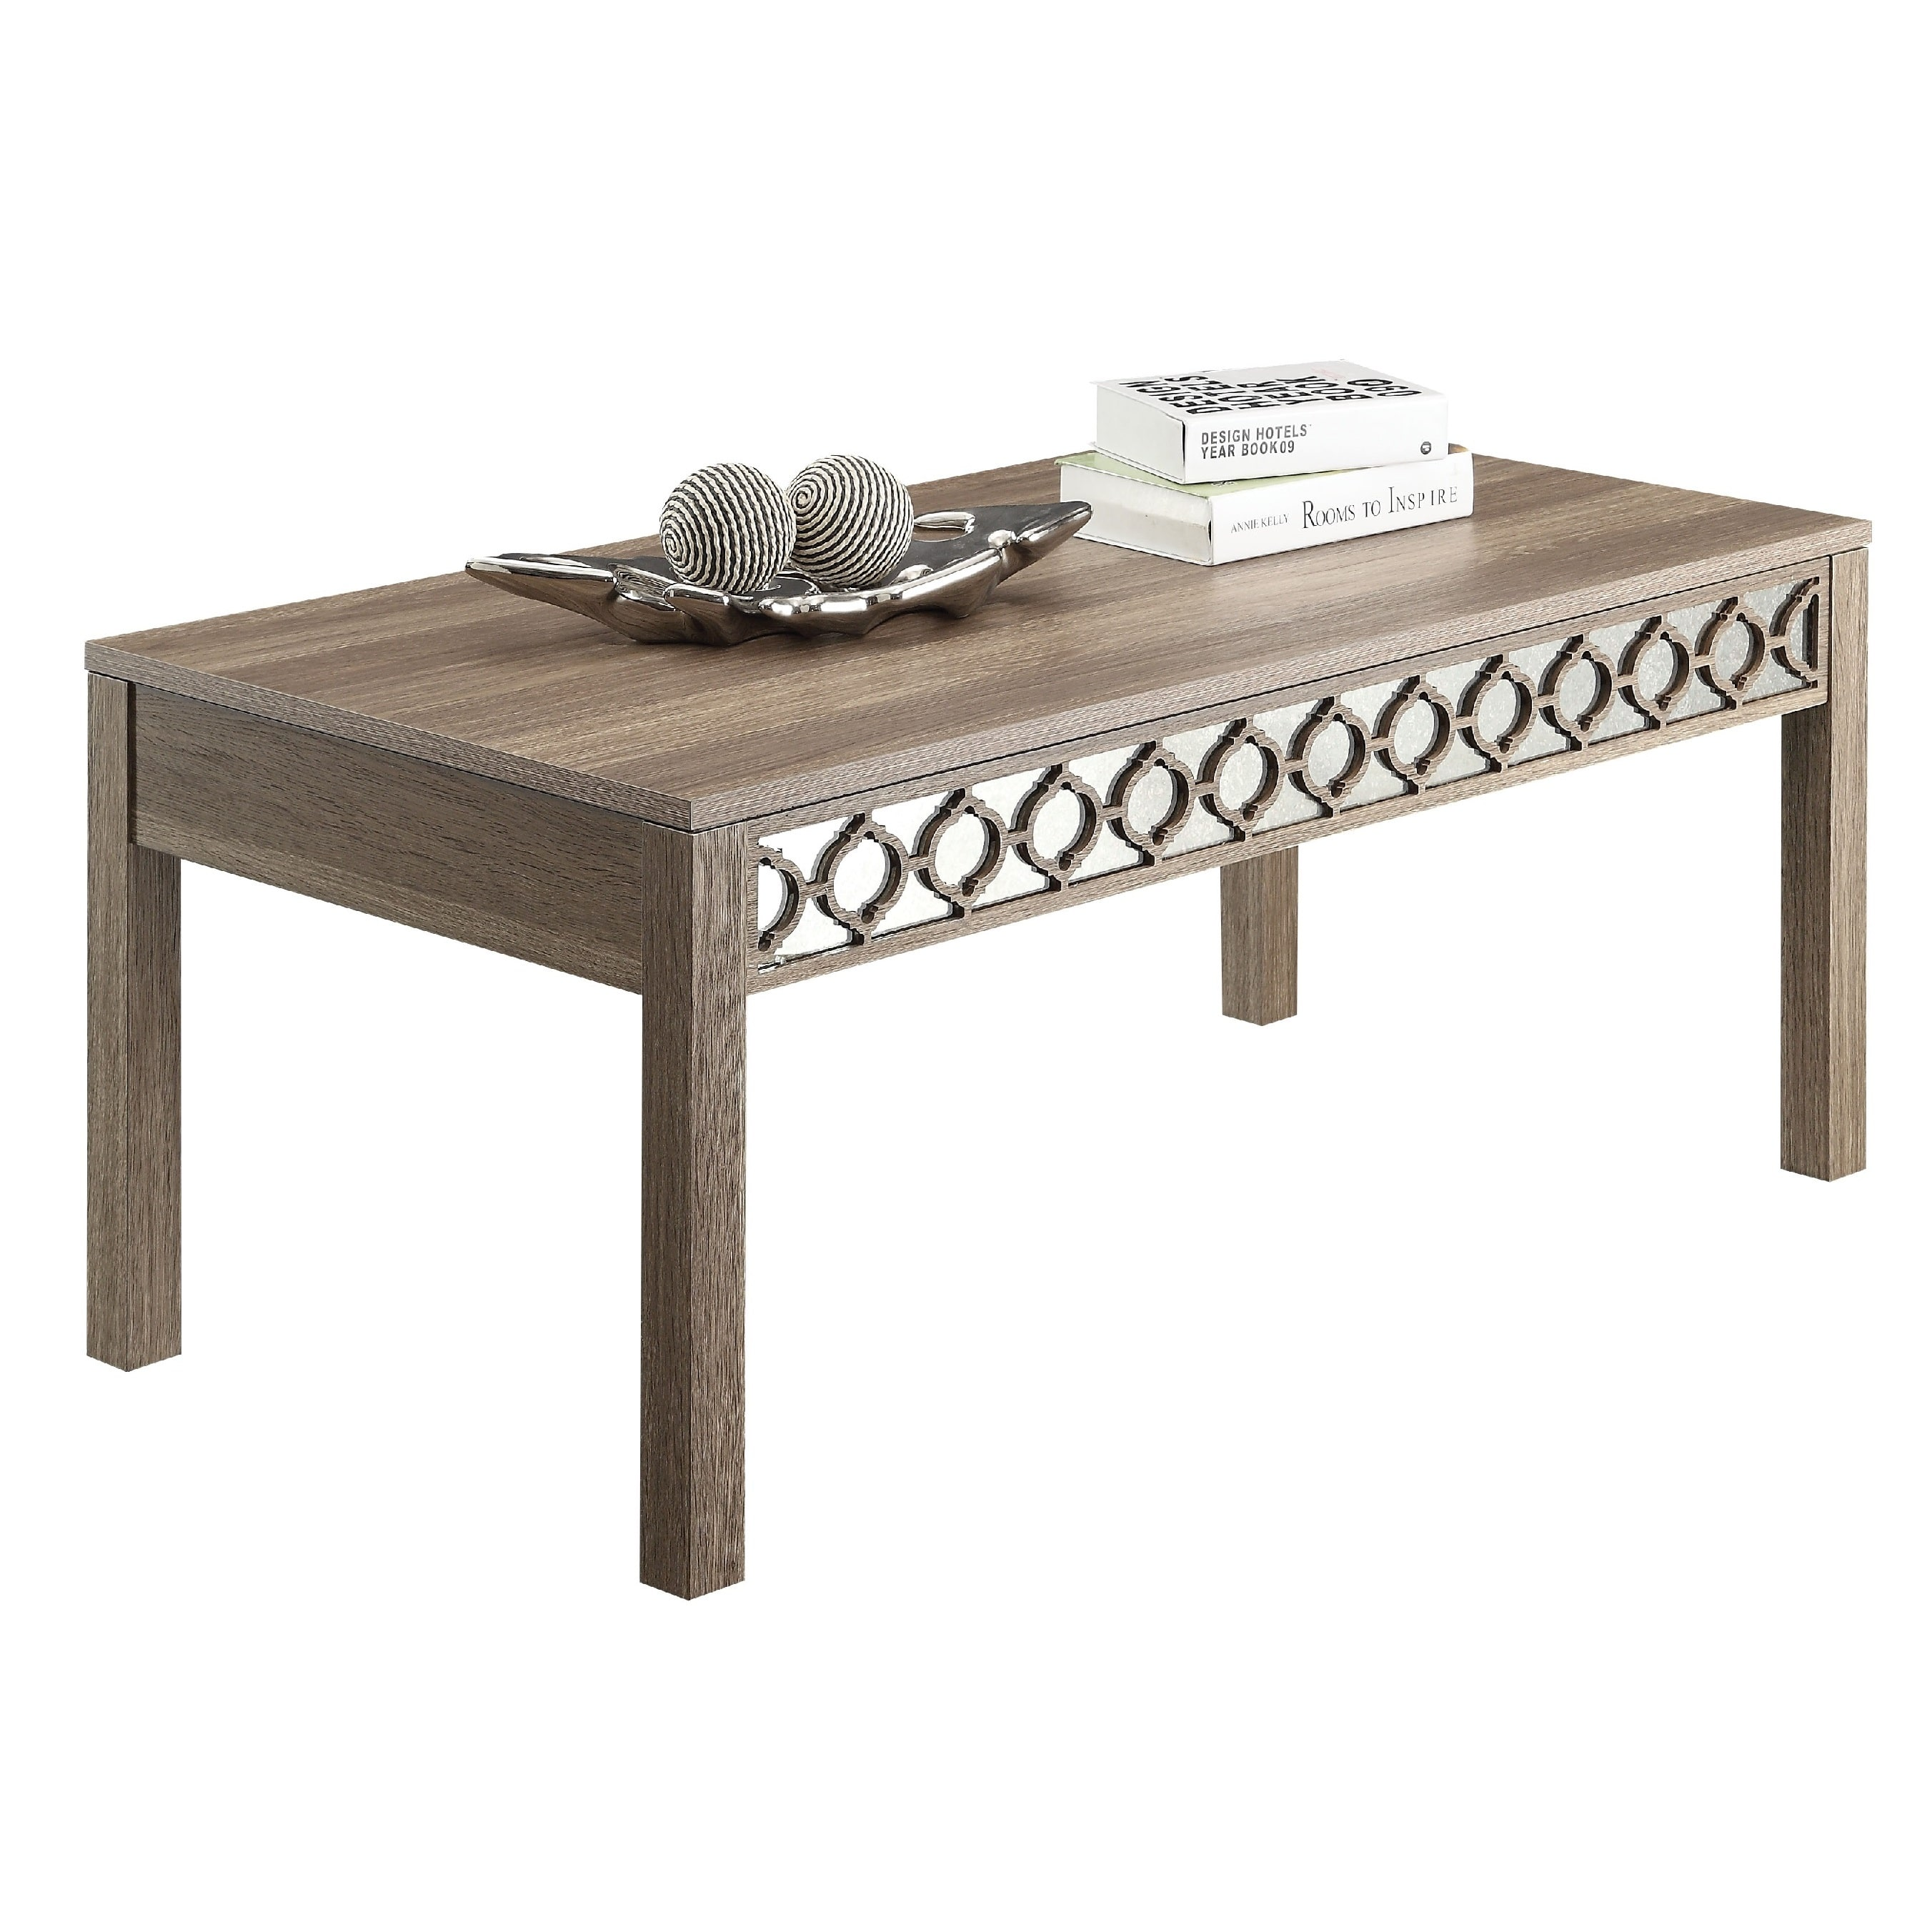 office star products helena sun-bleached oak coffee table